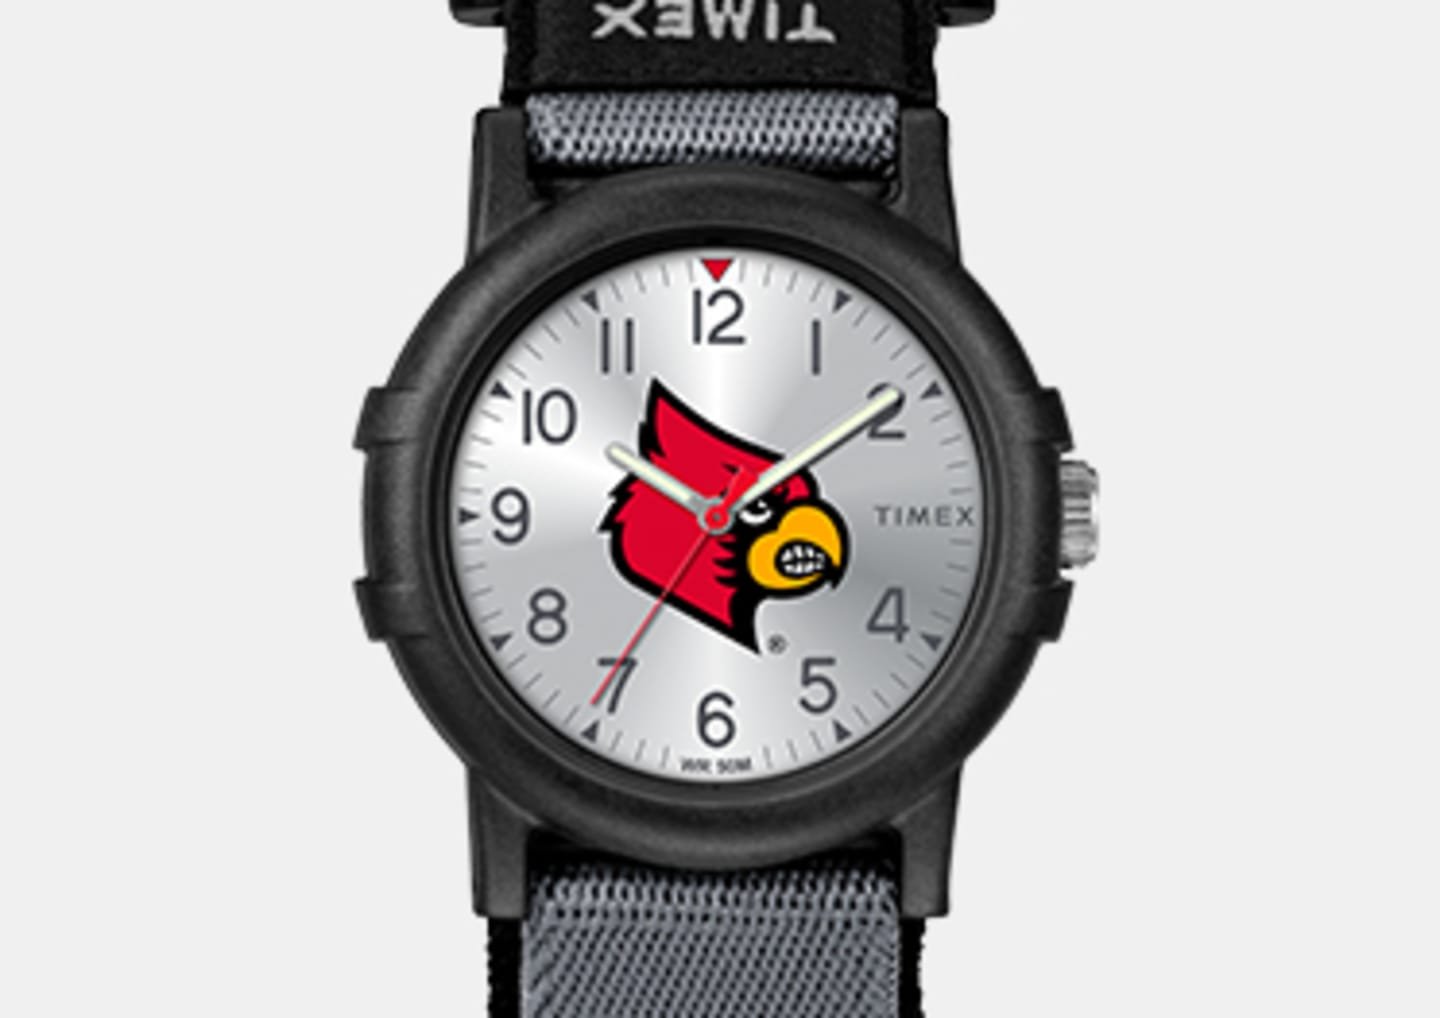 All Black Youth Watch With Cardinals Logo In The Center